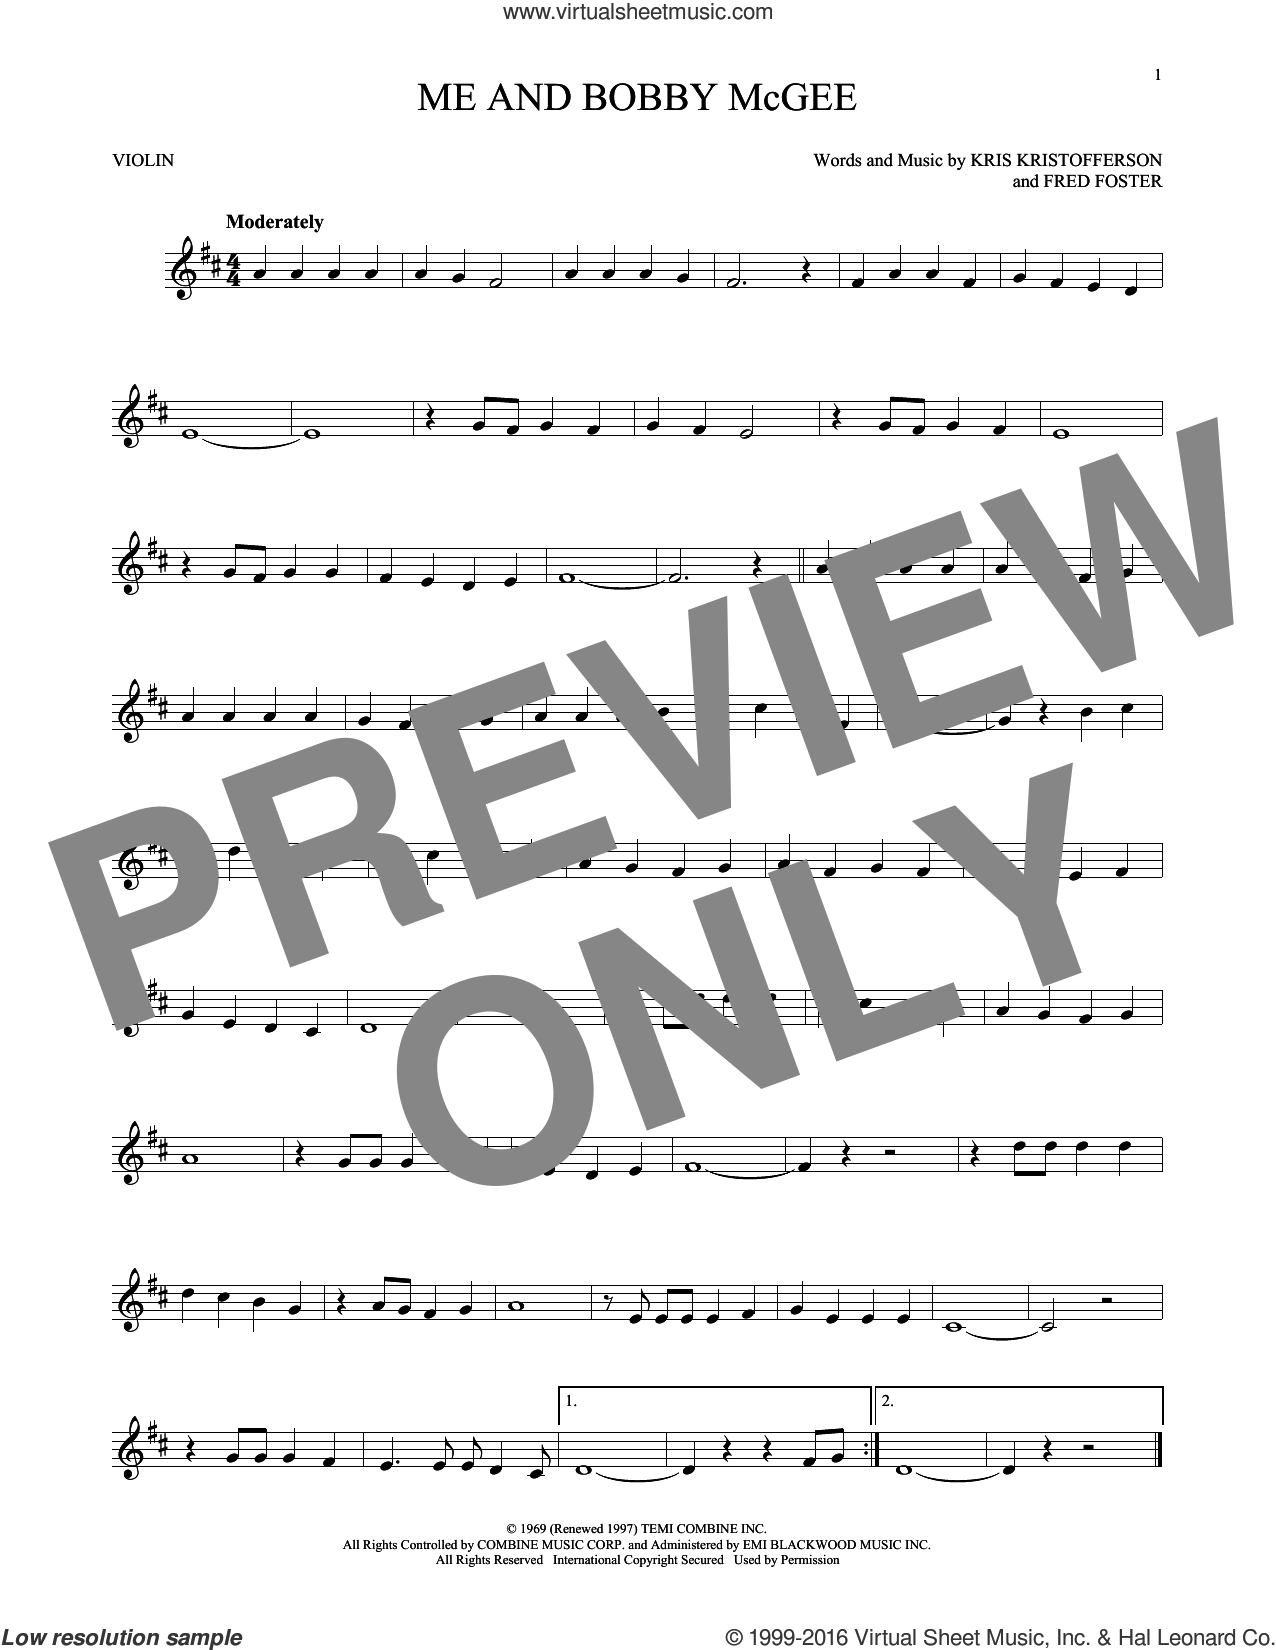 Me And Bobby McGee sheet music for violin solo by Kris Kristofferson, Janis Joplin, Roger Miller and Fred Foster, intermediate skill level